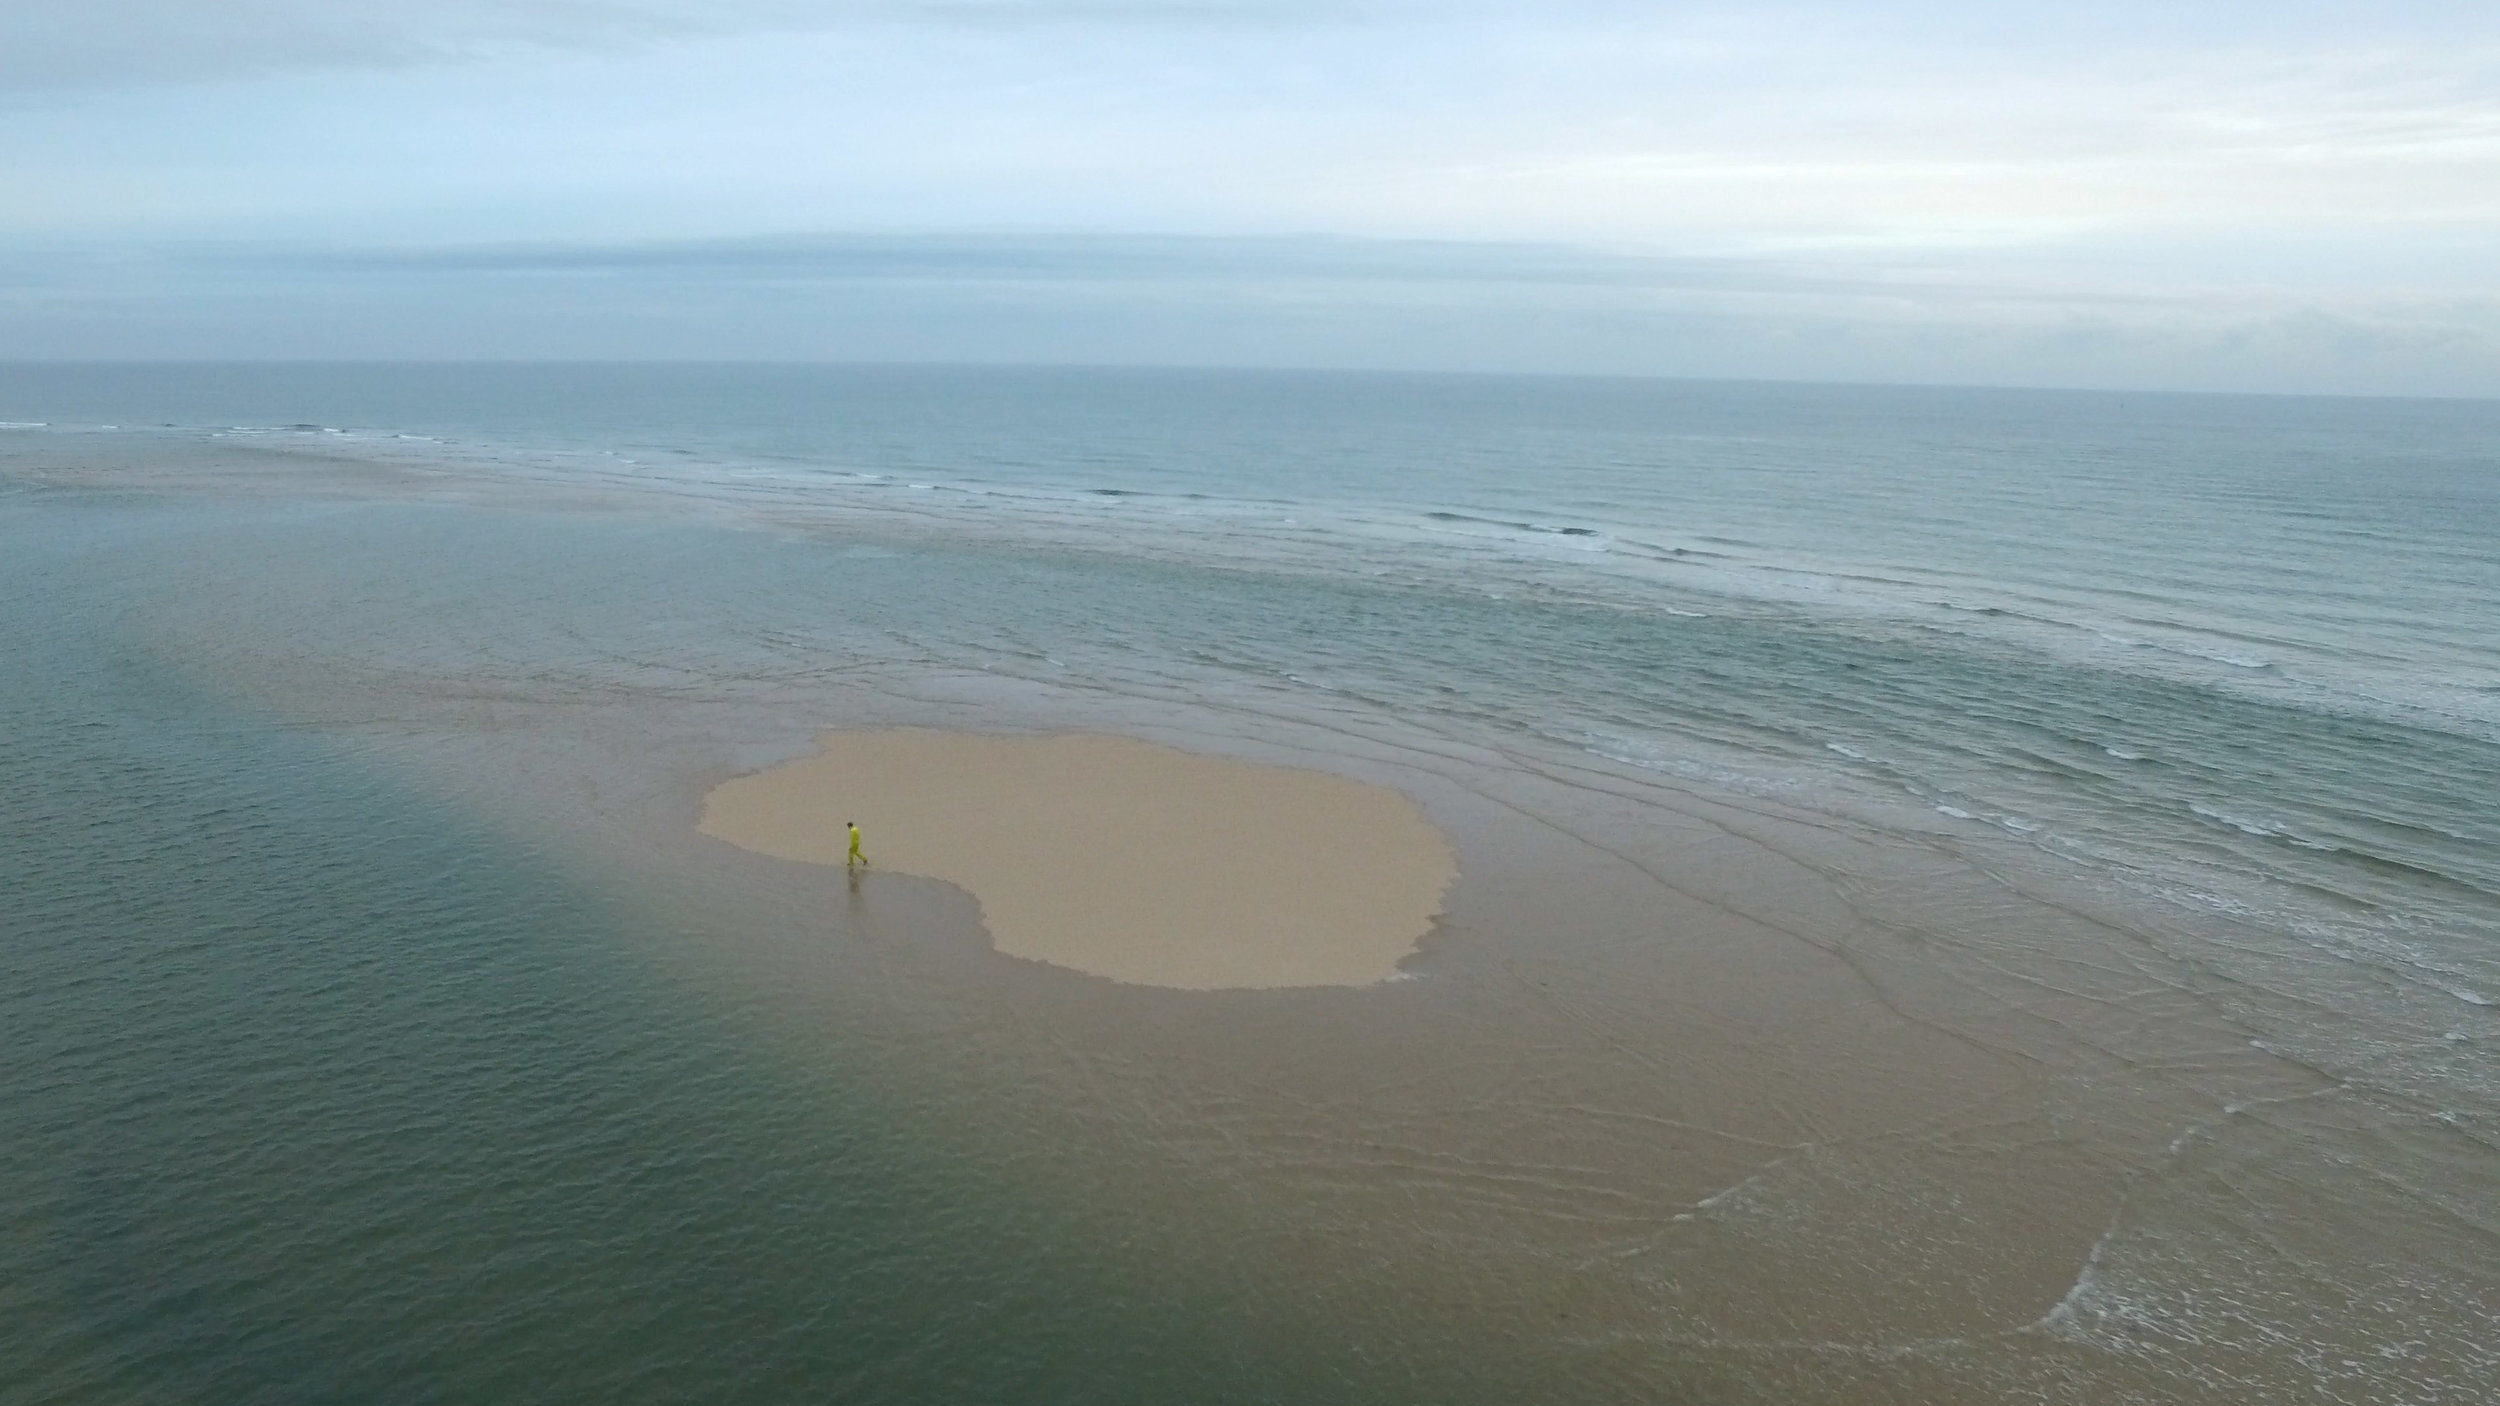 Simon Faithfull's film, 'Going Nowhere 1.5' shows a lone man in a yellow suit walking doggedly around an intertidal island. We see the figure walk around the decreasing space, as the sea expands around him, until the sea is all we see.